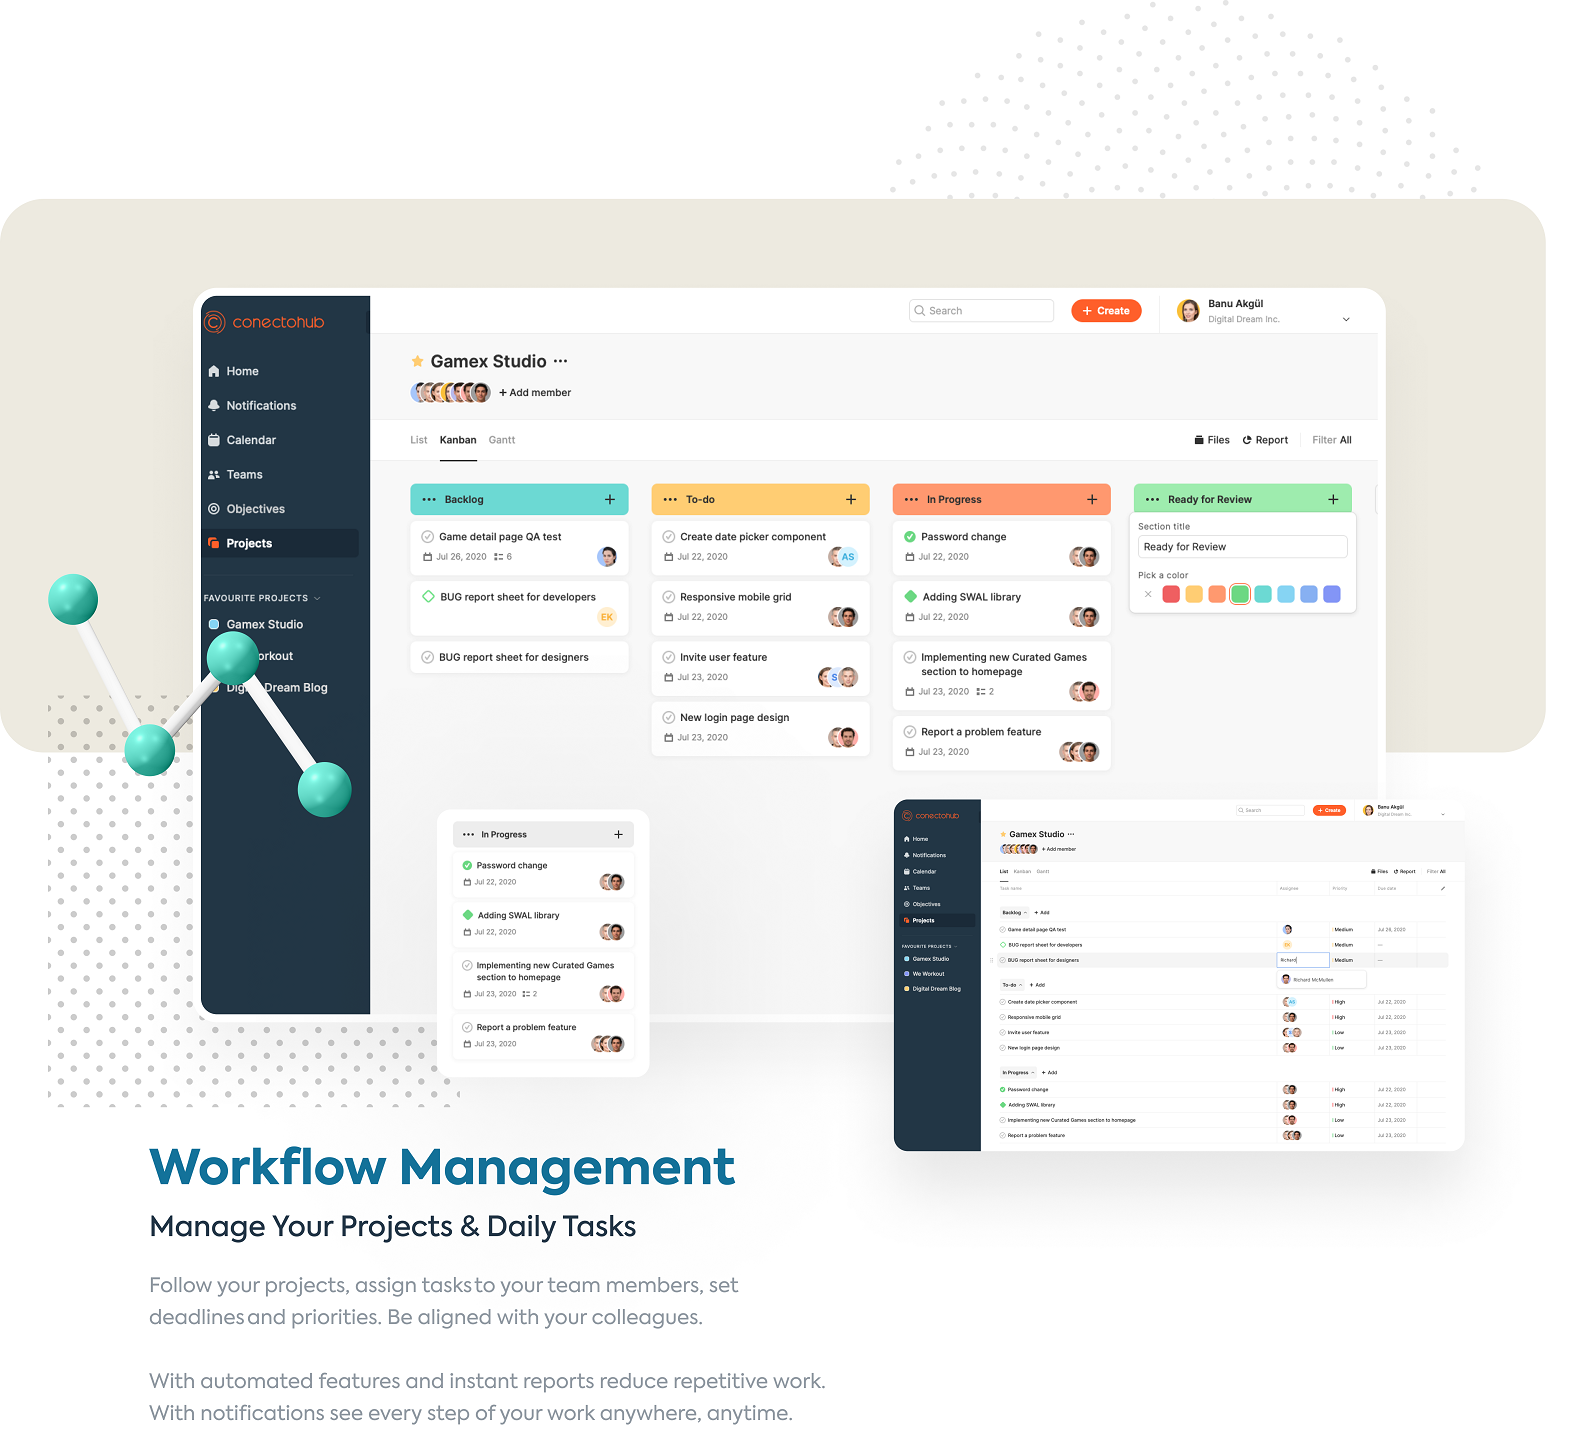 Workflow Management Manage Your Projects & Daily Tasks Follow your projects, assign tasks to your team members, set deadlines and priorities. Be aligned wit your colleagues. With automated features and instant reports reduce repetitive work. With notifications see every step of your work anywhere, anytime.